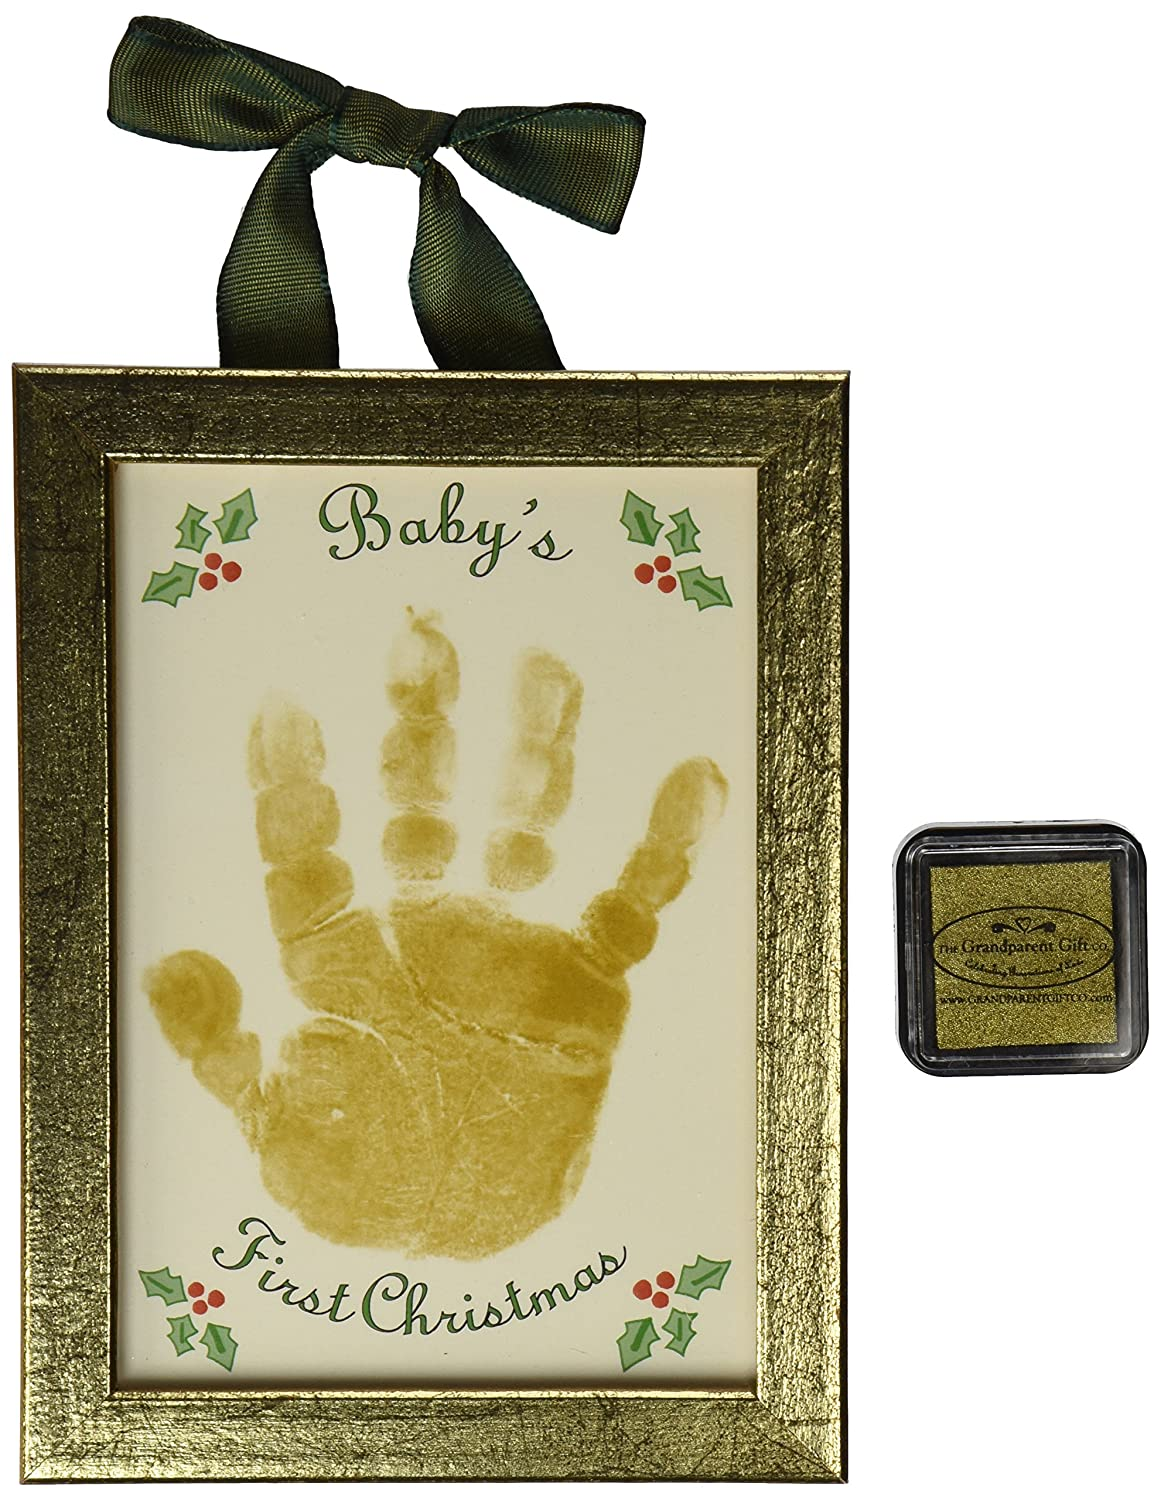 The Grandparent Gift Holiday First Christmas Handprint Keepsake, Baby's Baby's The Grandparent Gift Co. 3054